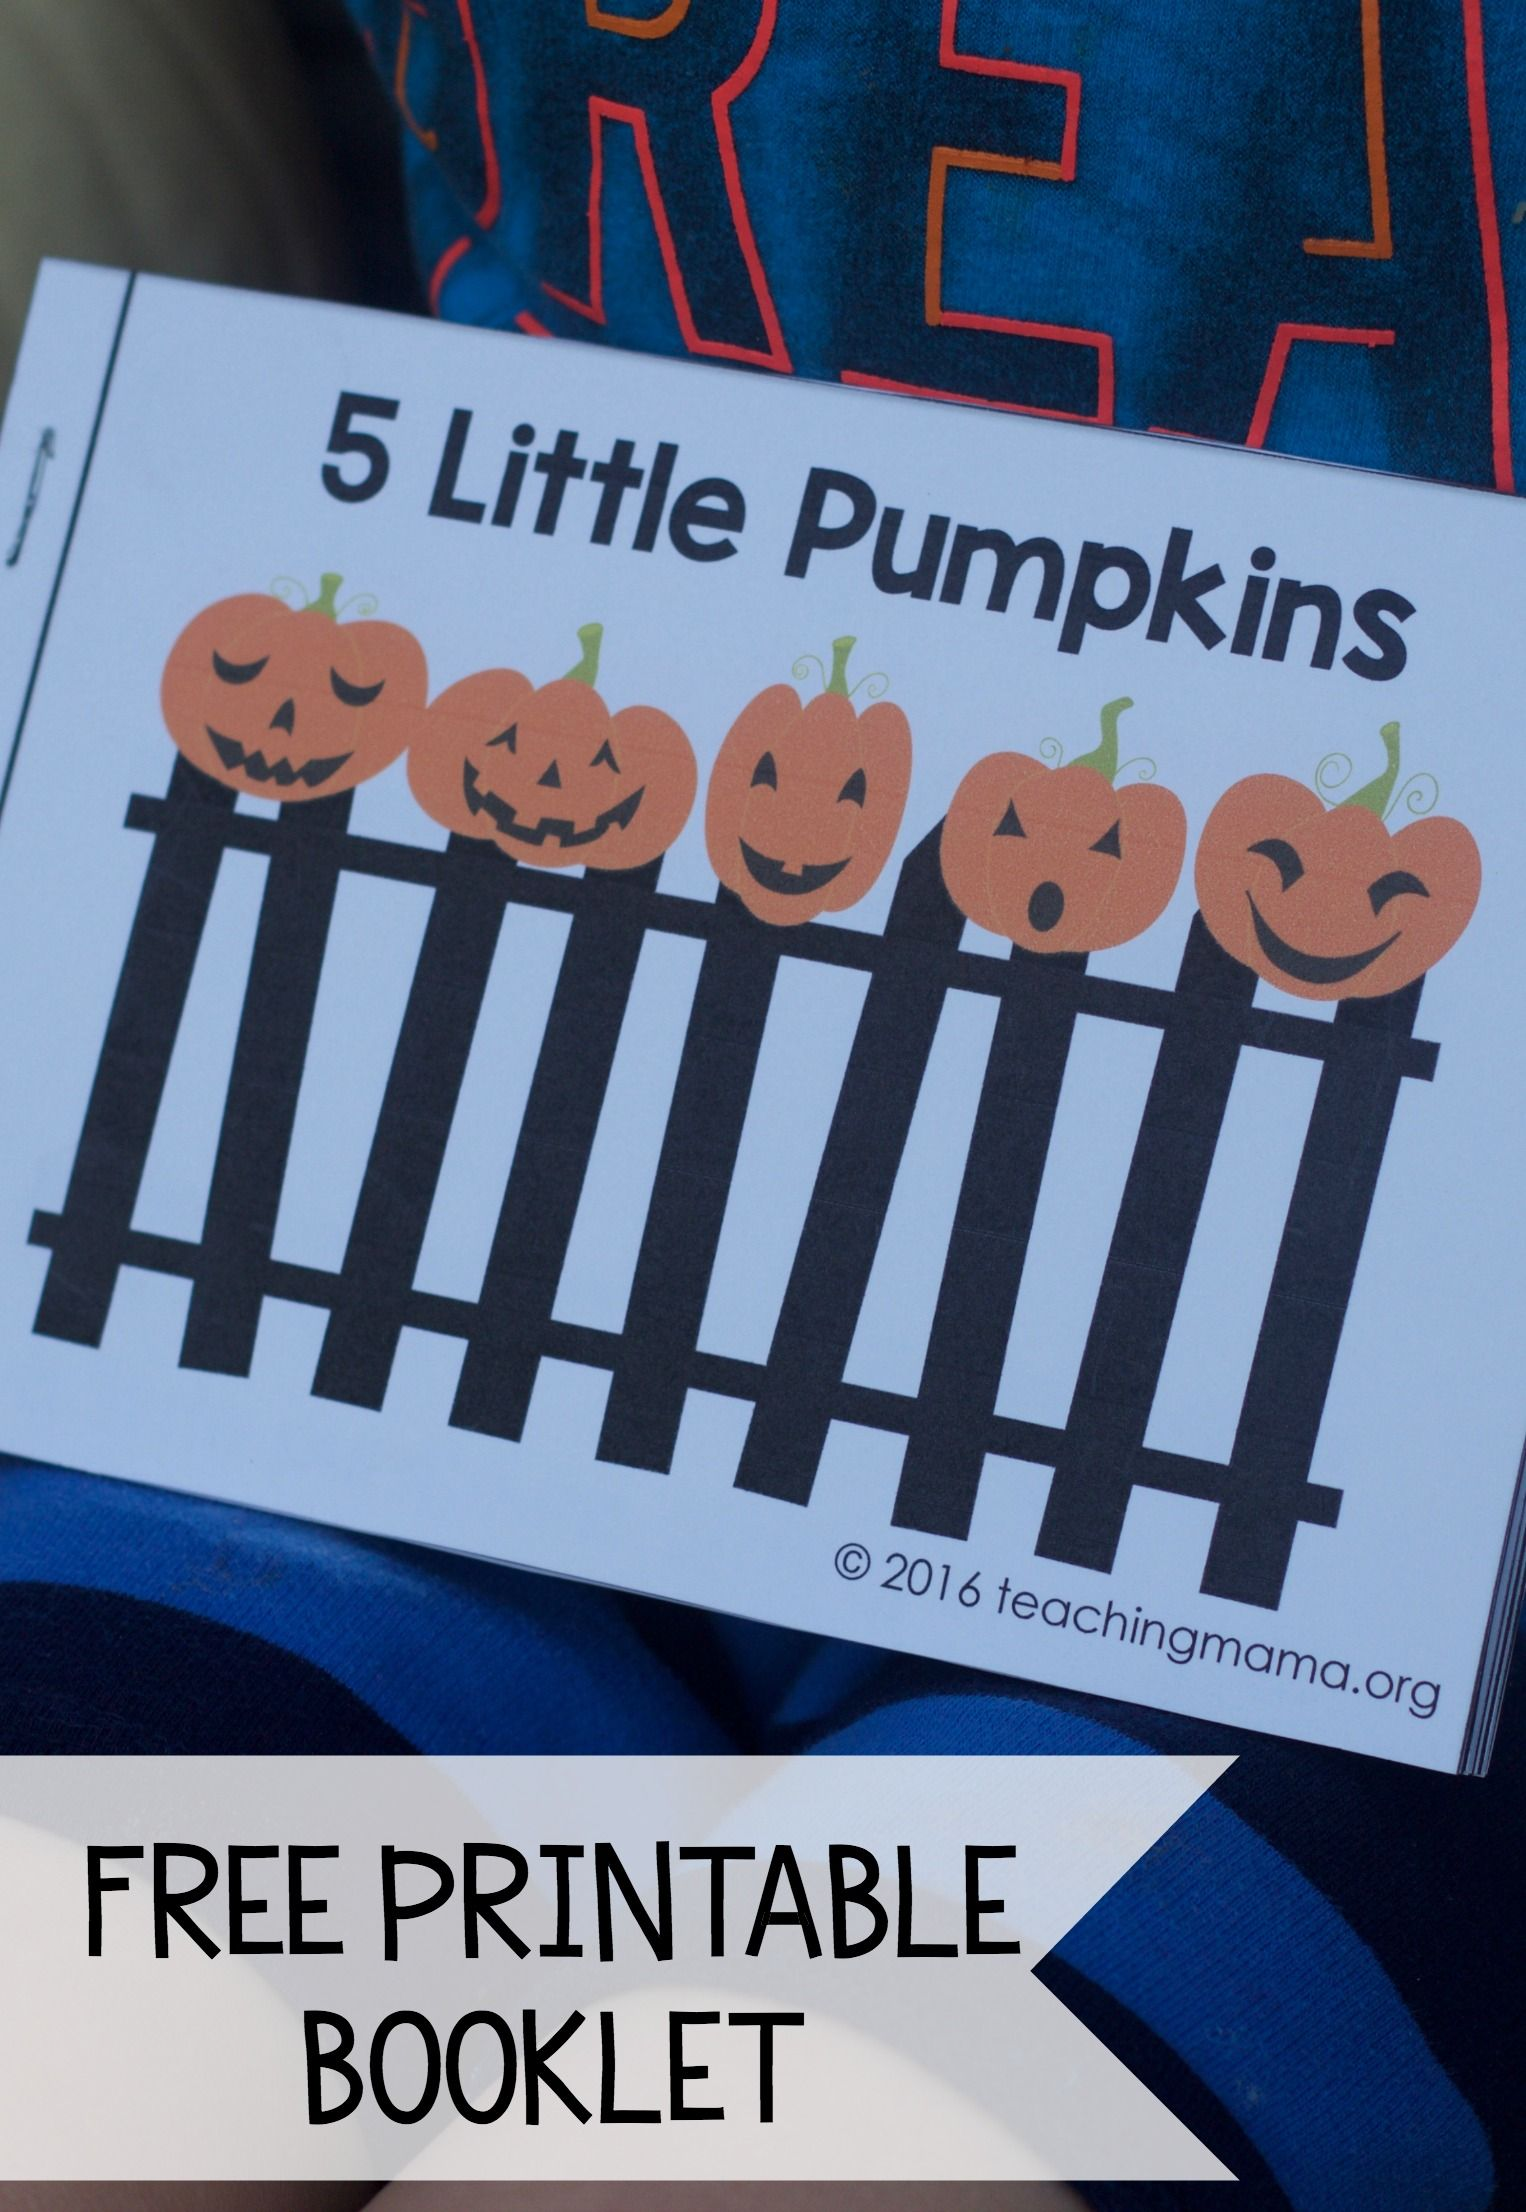 Five Little Pumpkins - Free Rhyme Booklet | Free rhymes, Poem and Child